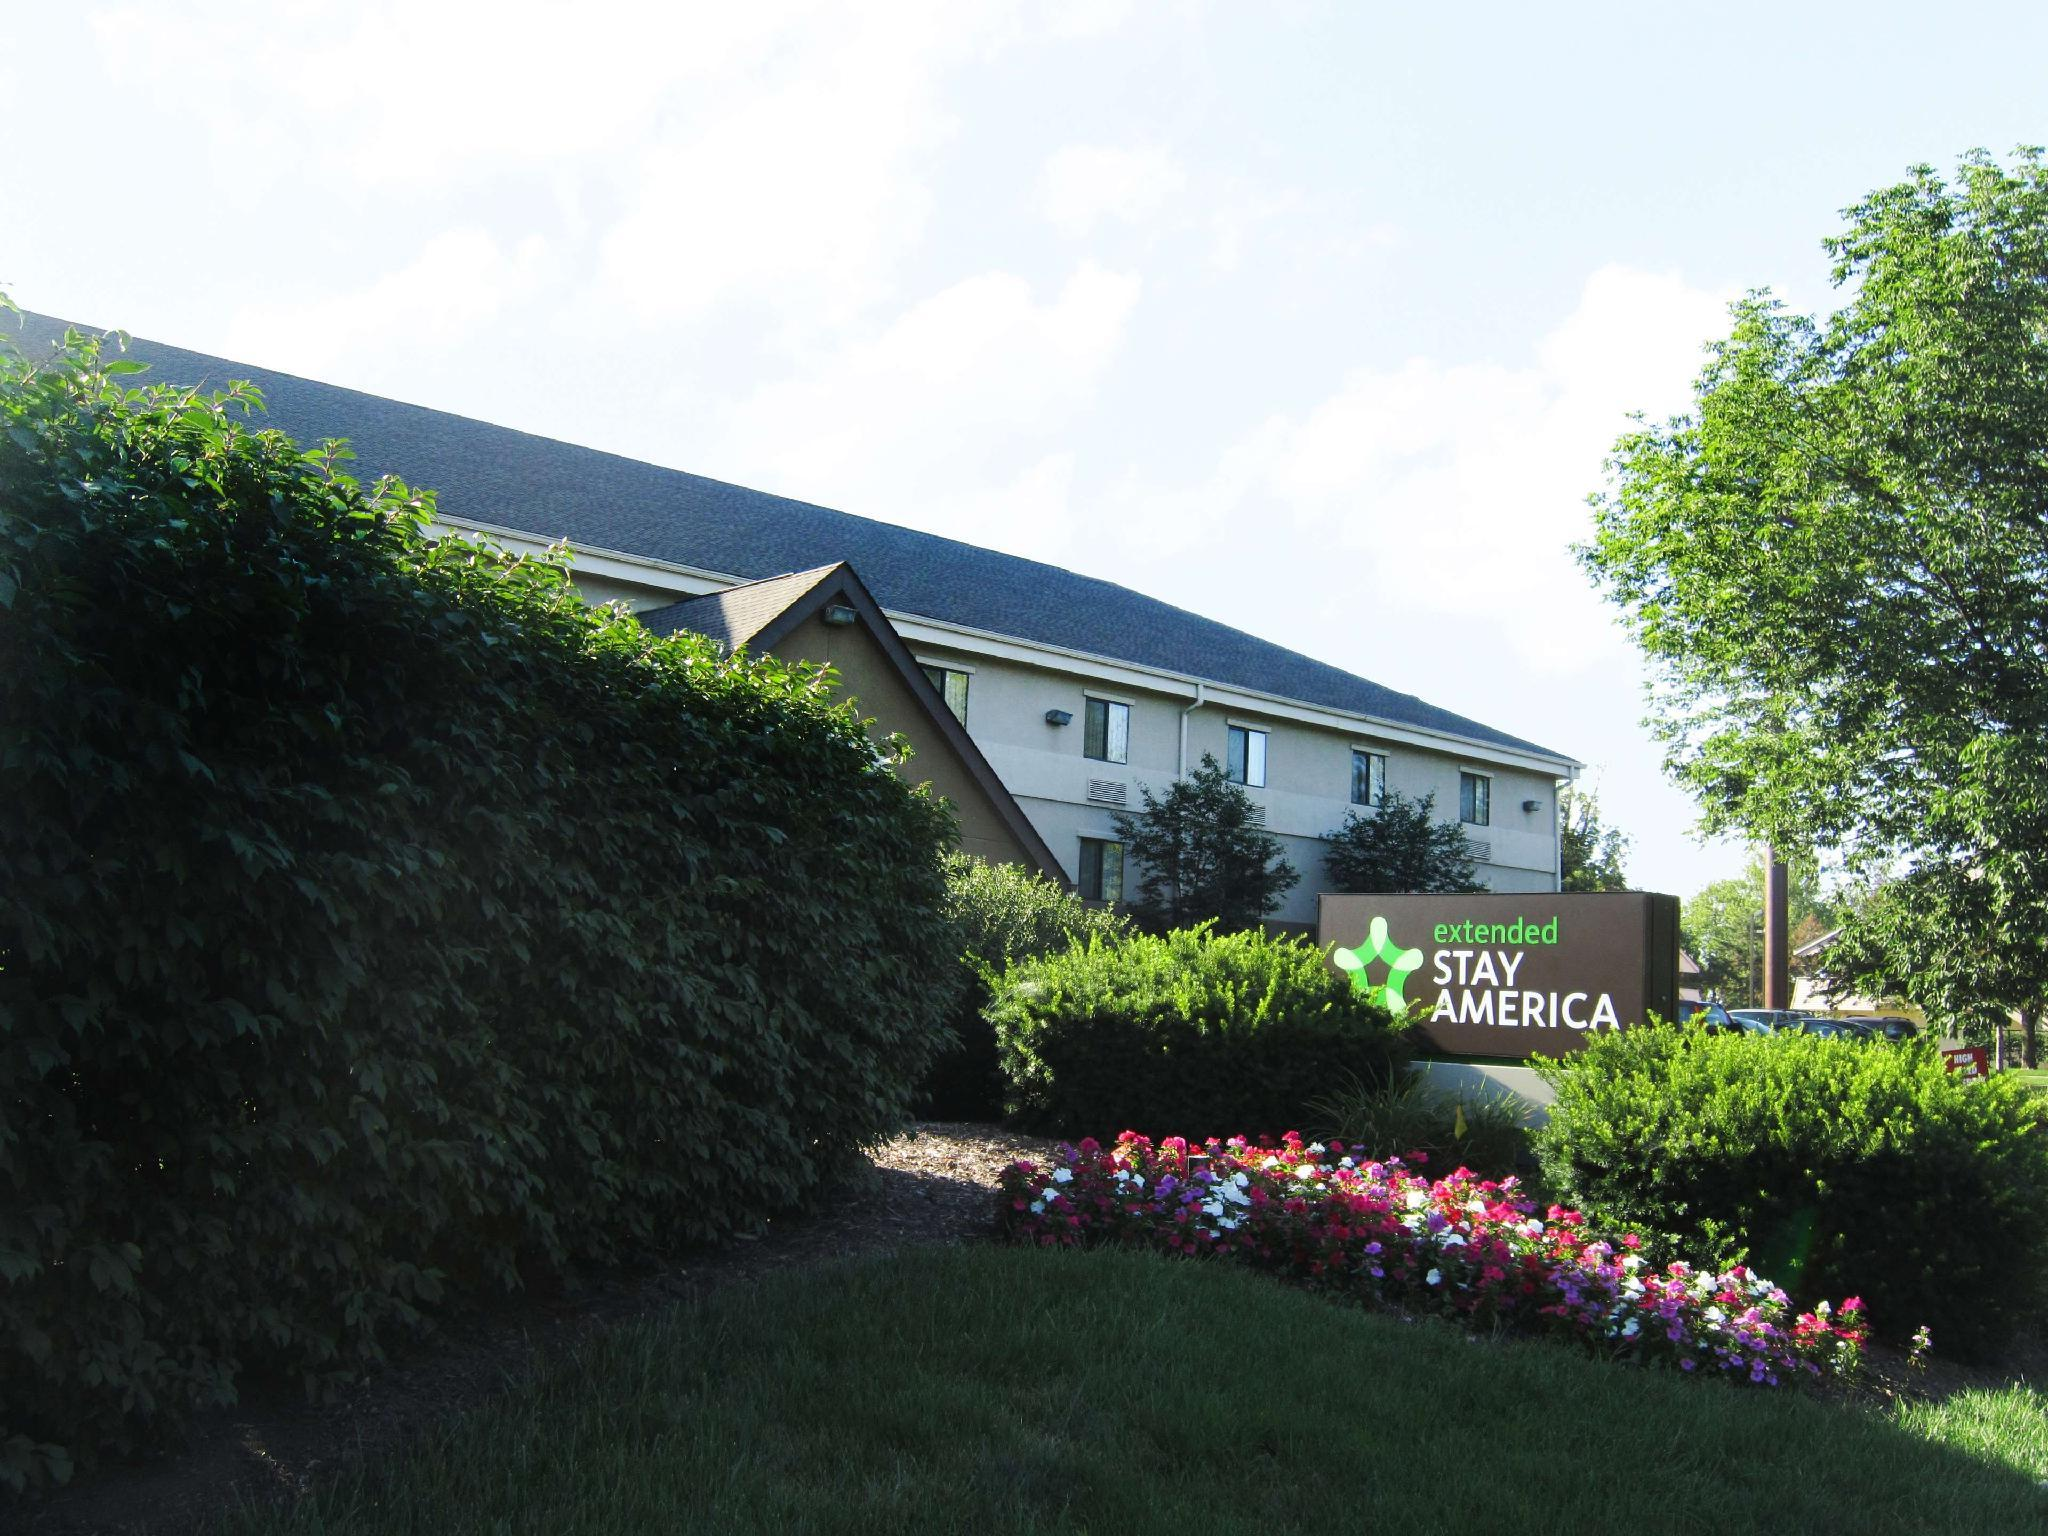 Extended Stay America Columbus East